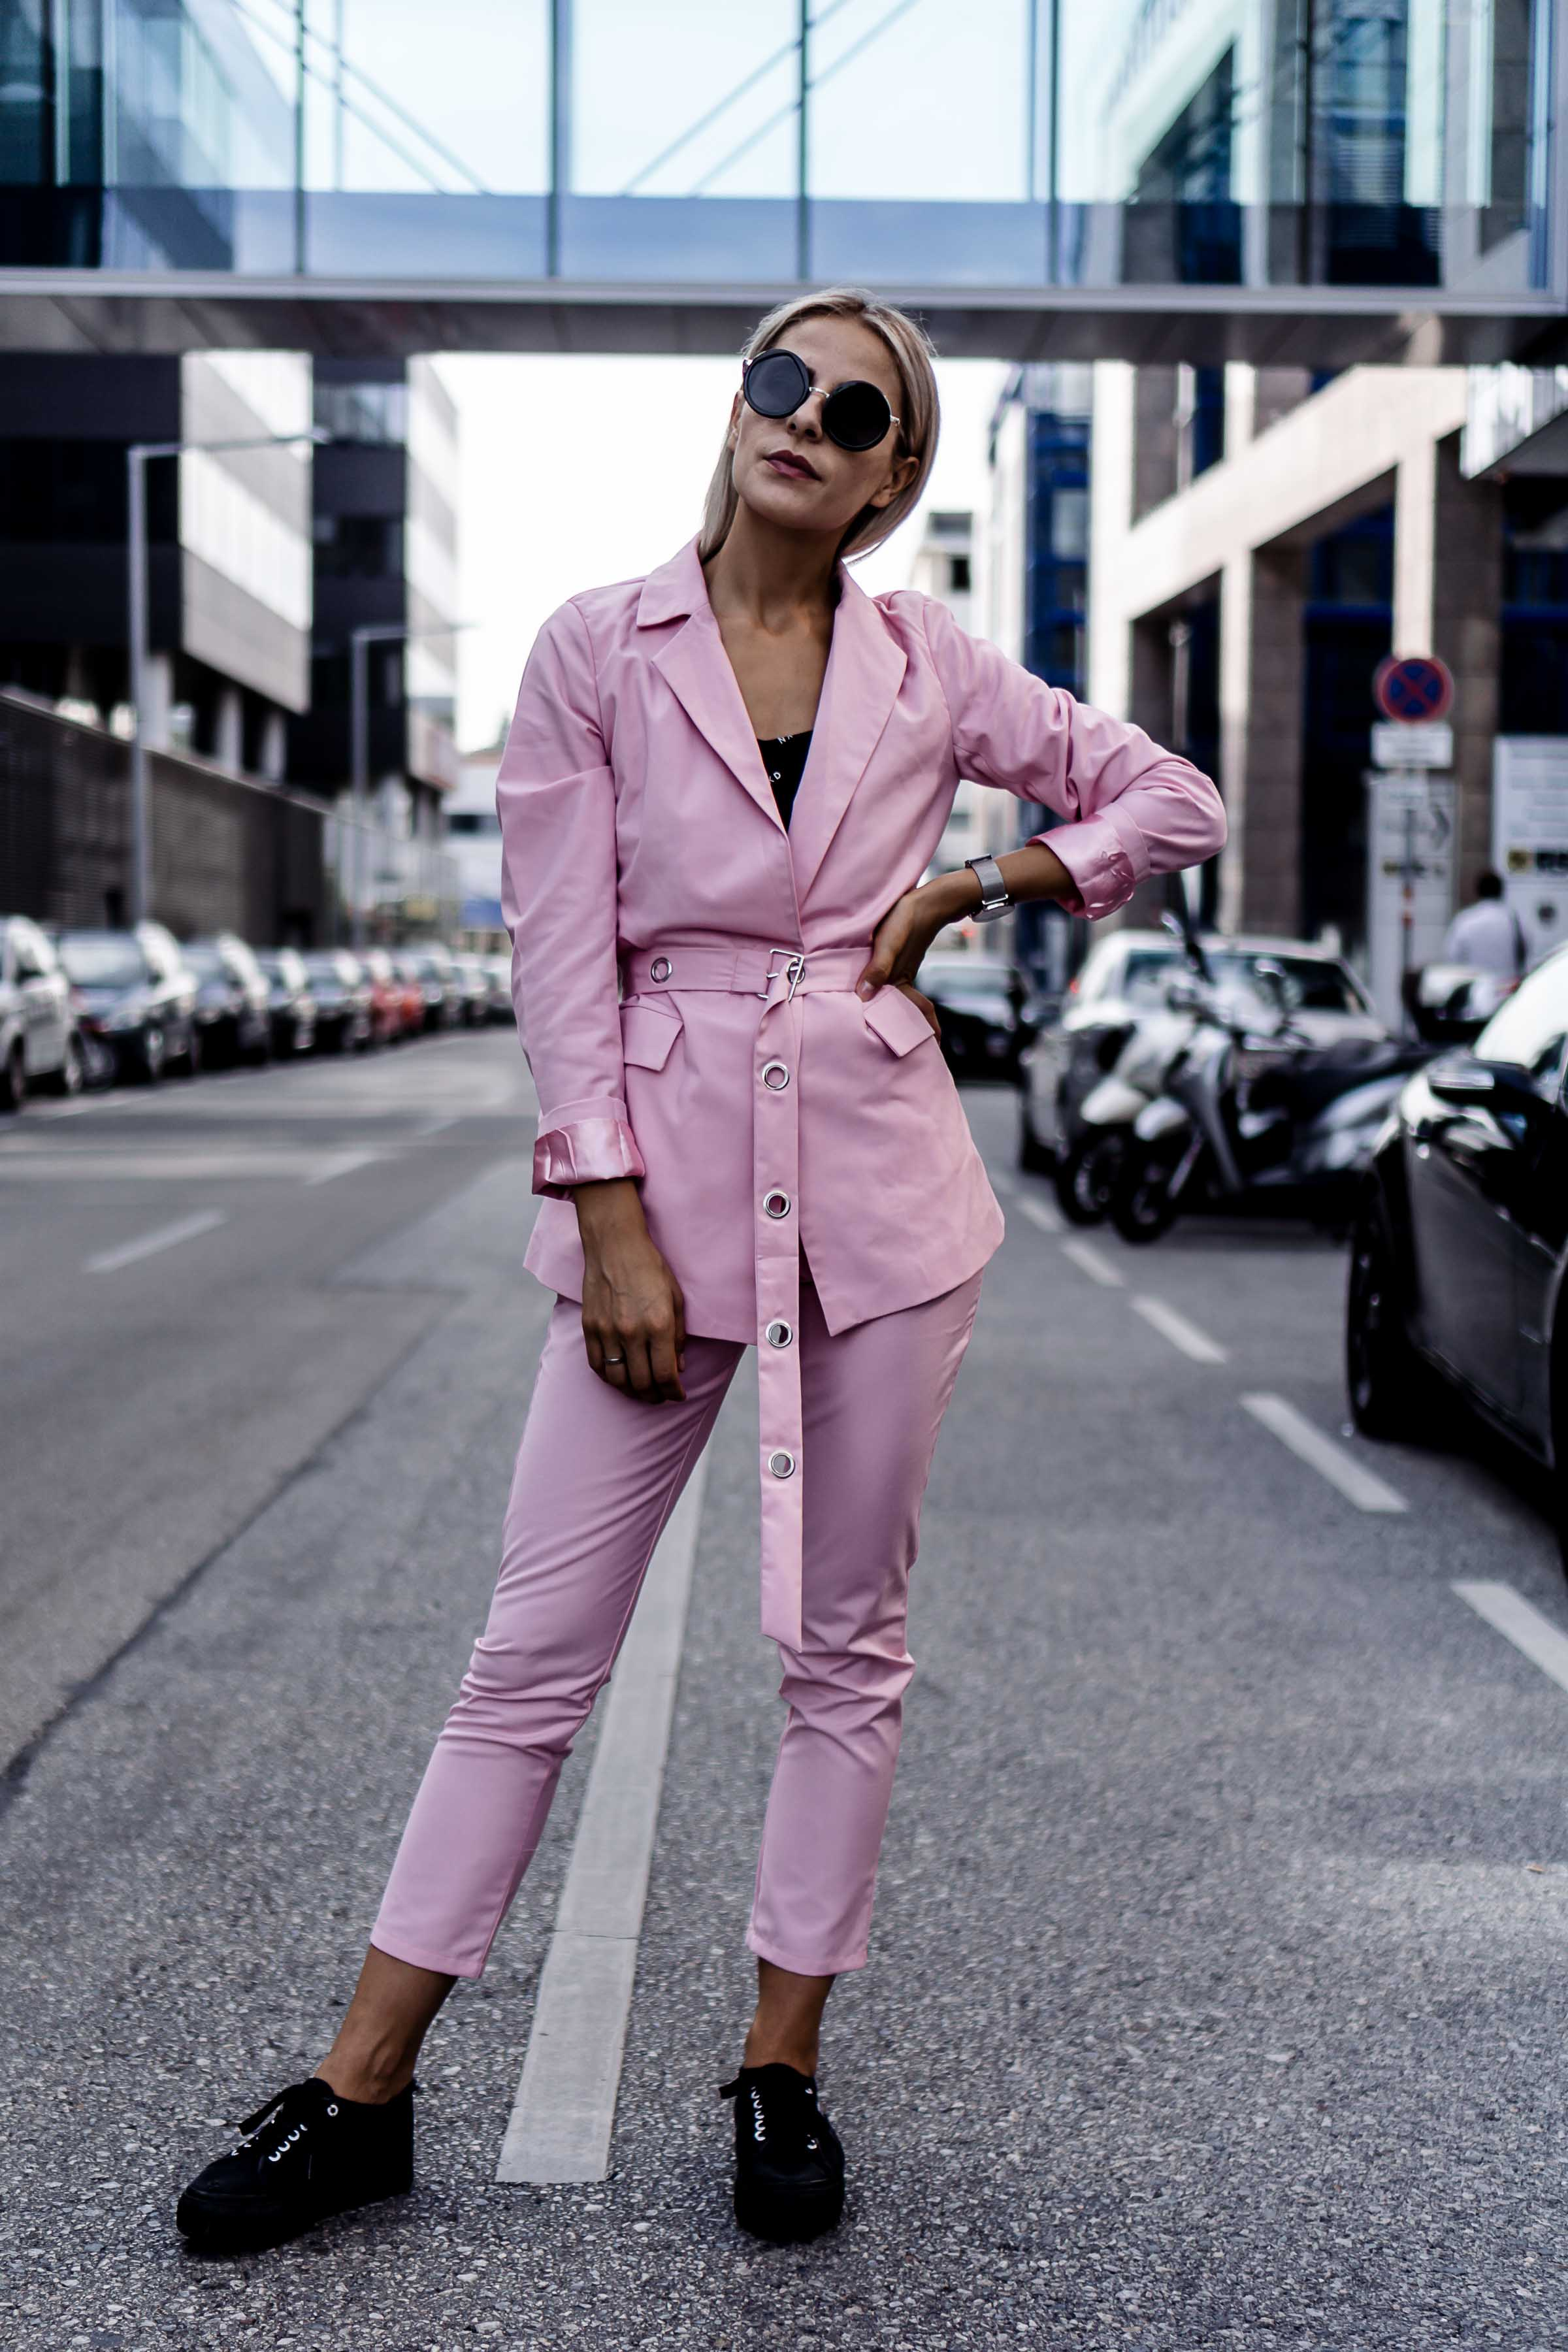 How to style a pink pantsuit?